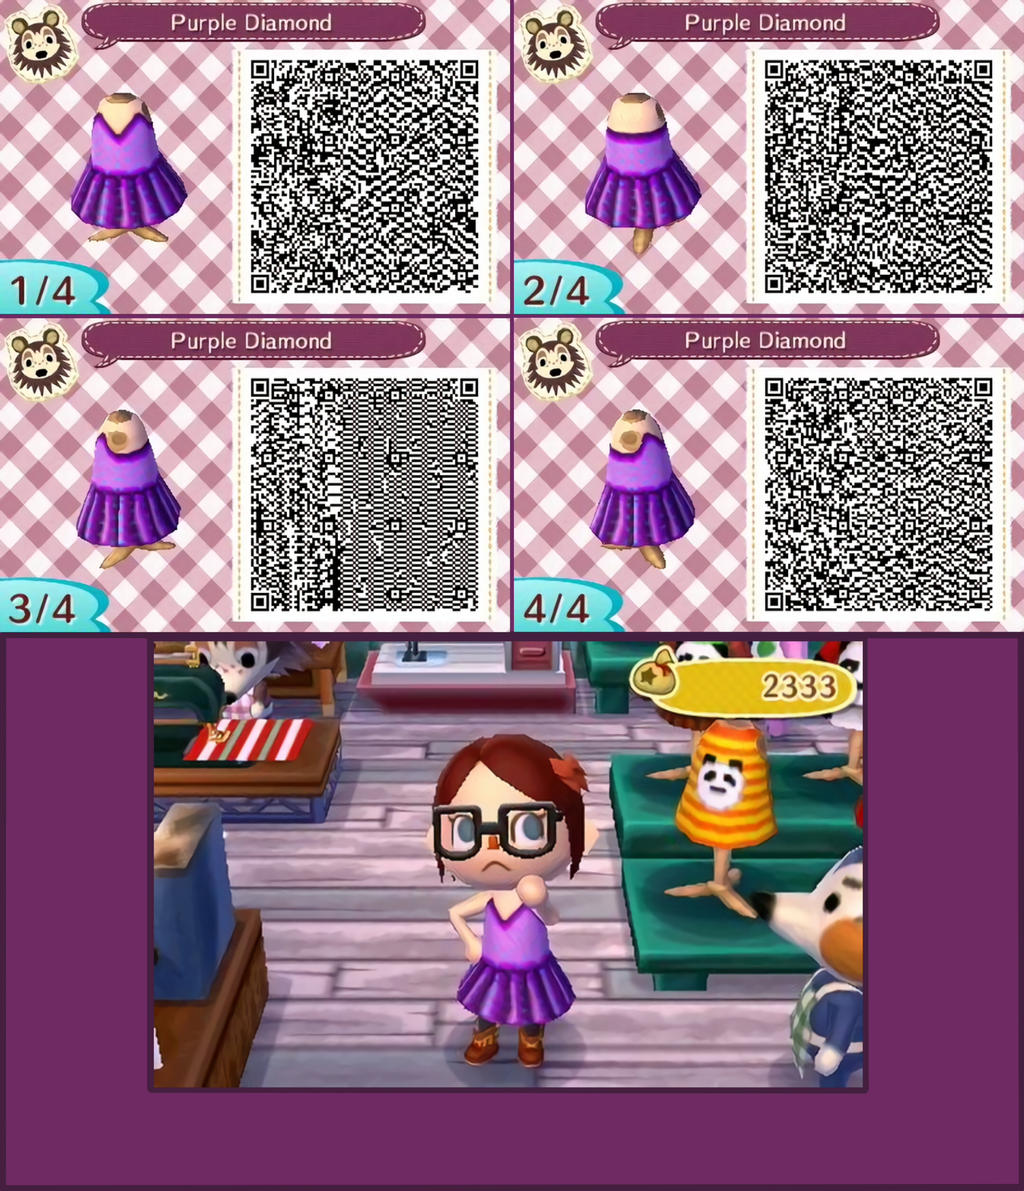 Acnl Qr Floor Bodendesigns Qr Codes Animal Crossing New Leaf Les 25